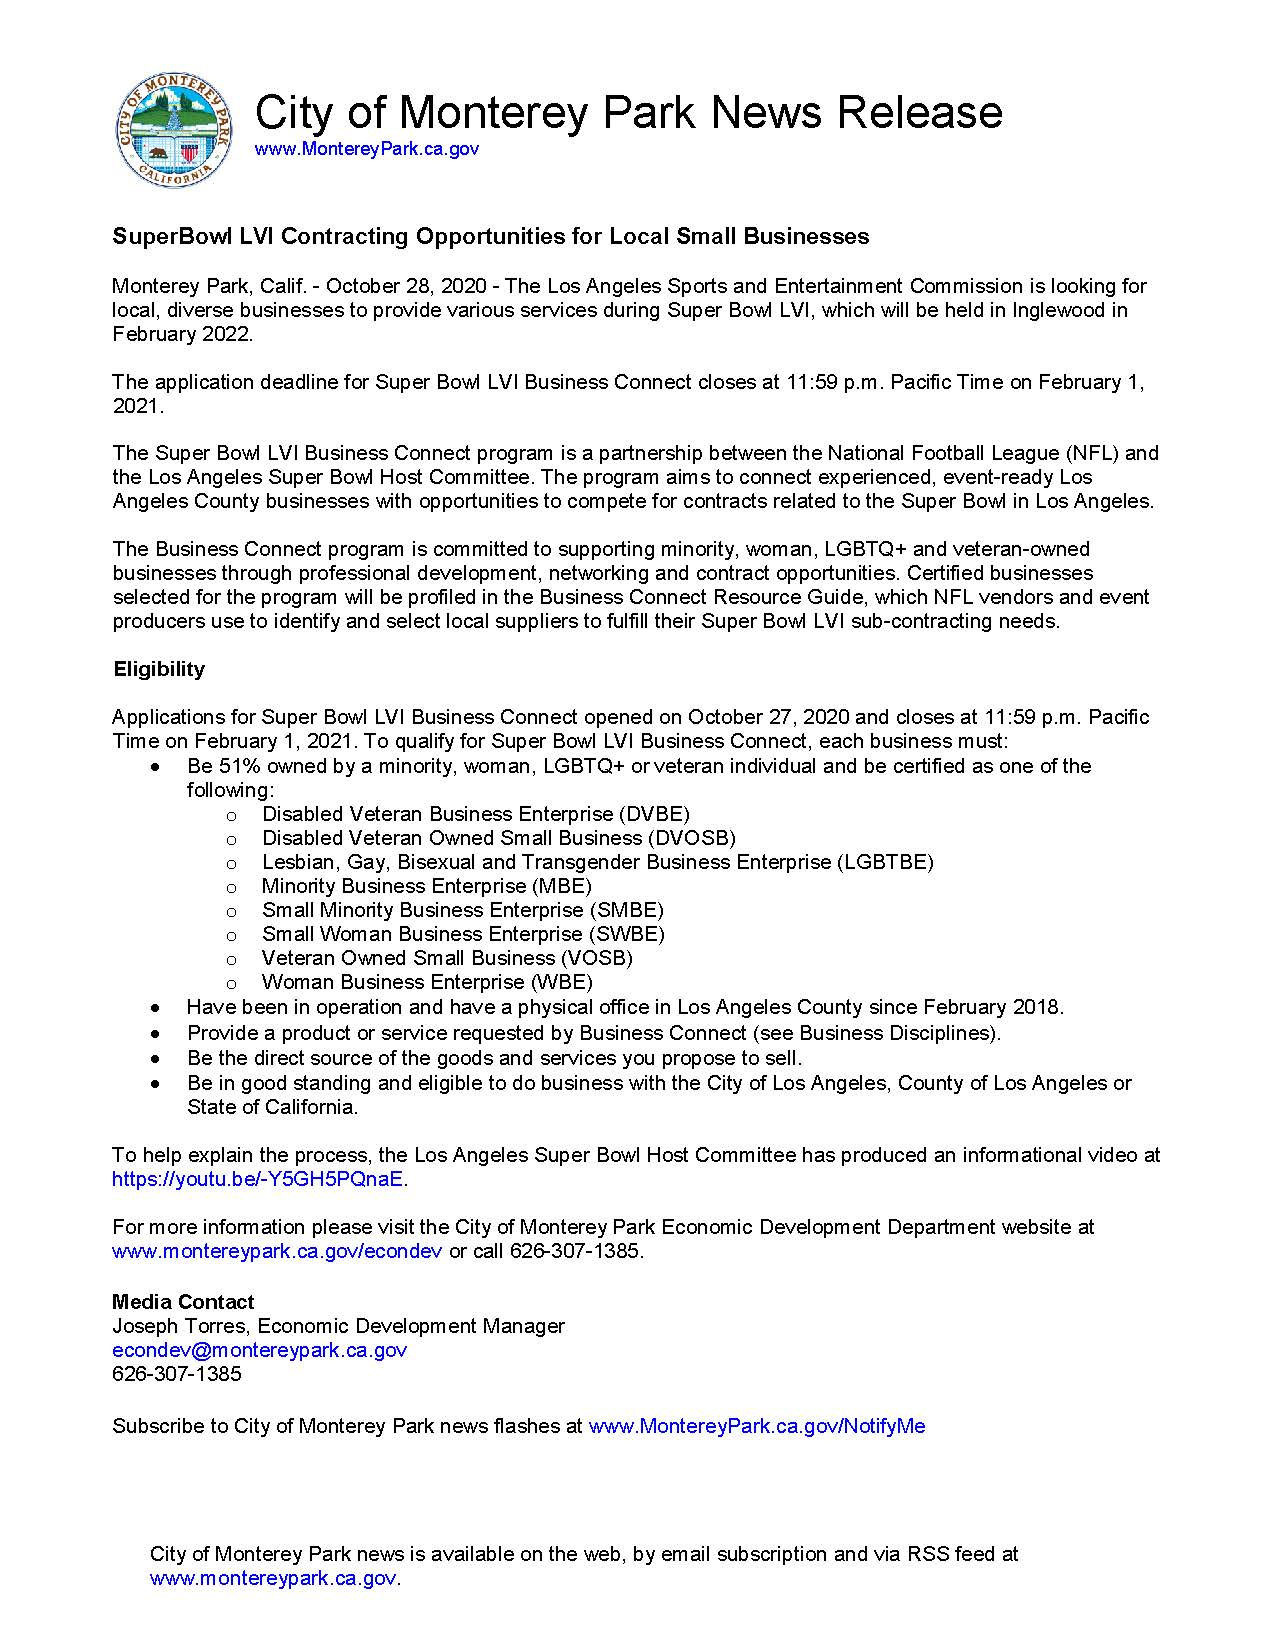 MPK News Release-SuperBowl LVI Contracting Opportunities for Local Small Businesses